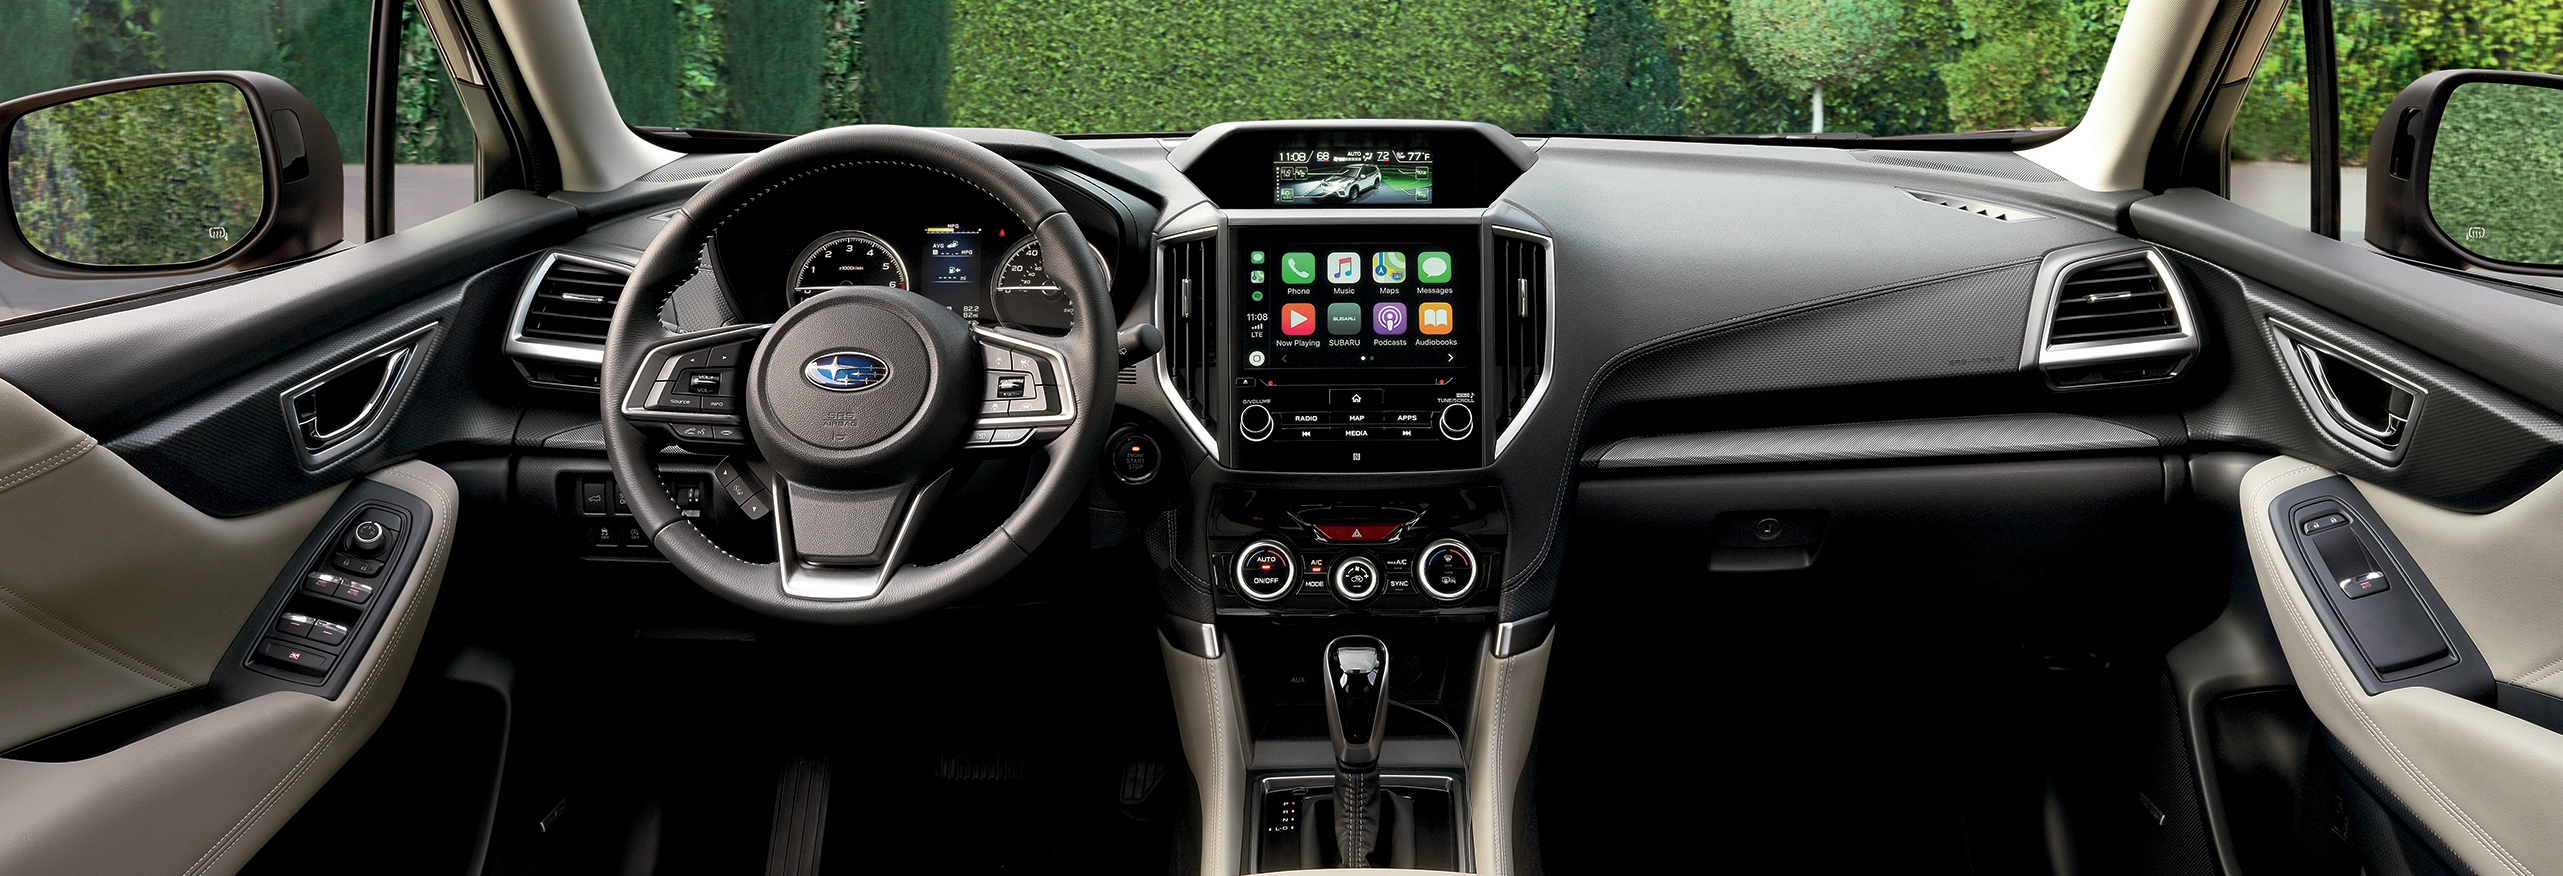 2019 Subaru Forester Interior Features